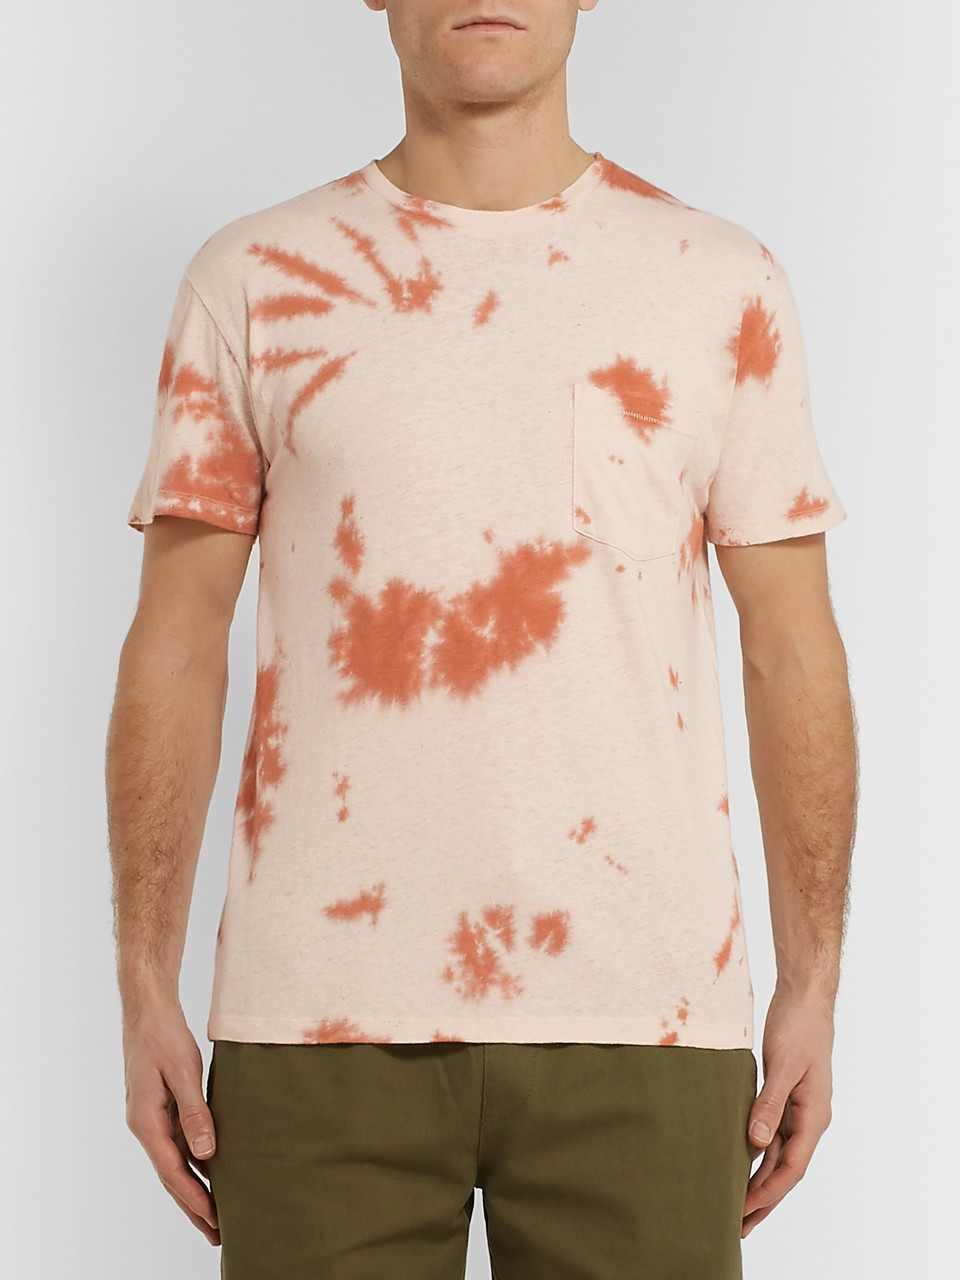 Mollusk Tie-Dyed Hemp and Cotton-Blend T-Shirt